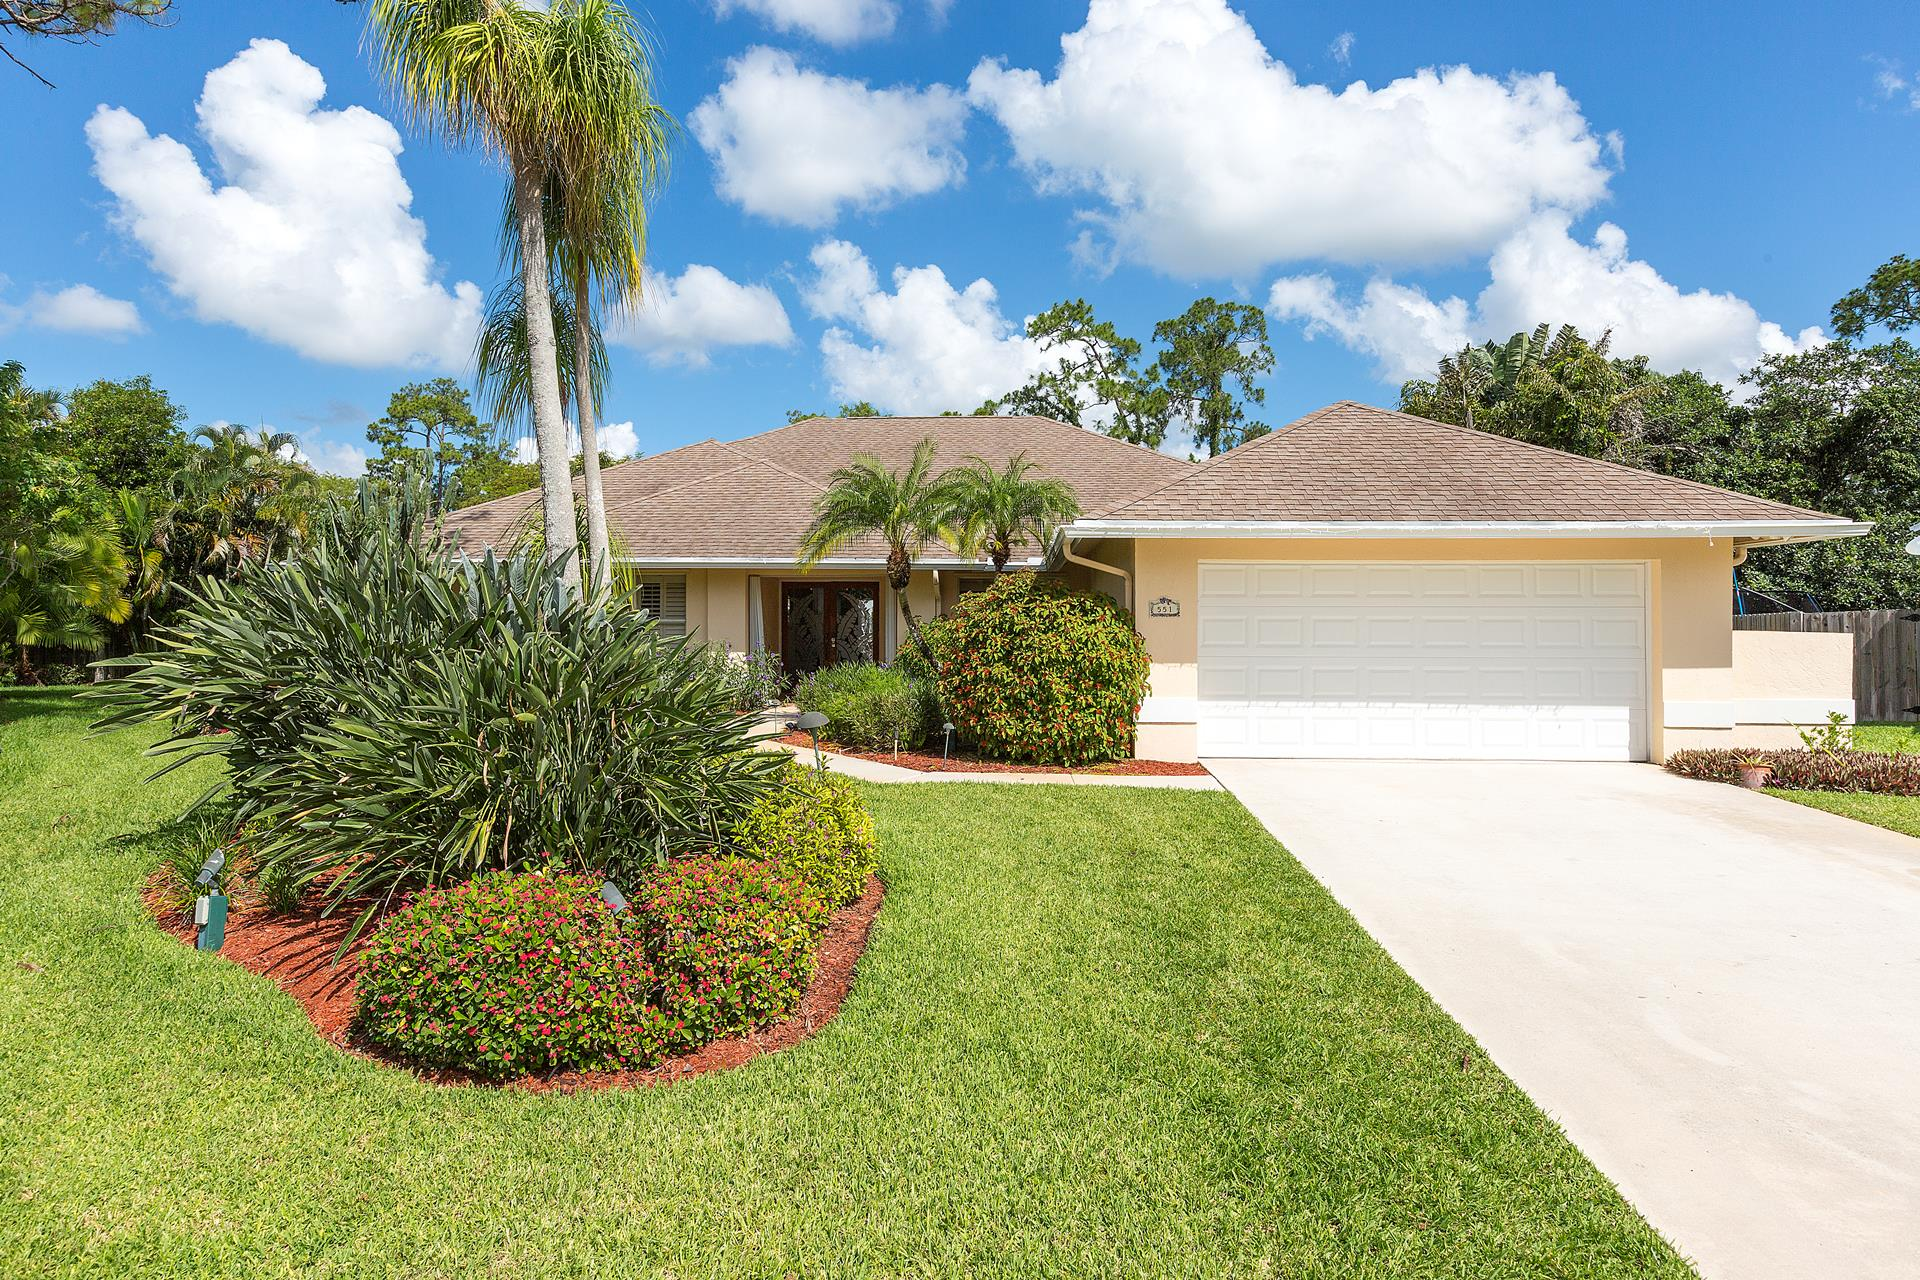 551 Kingsbury Terrace - Wellington, Florida